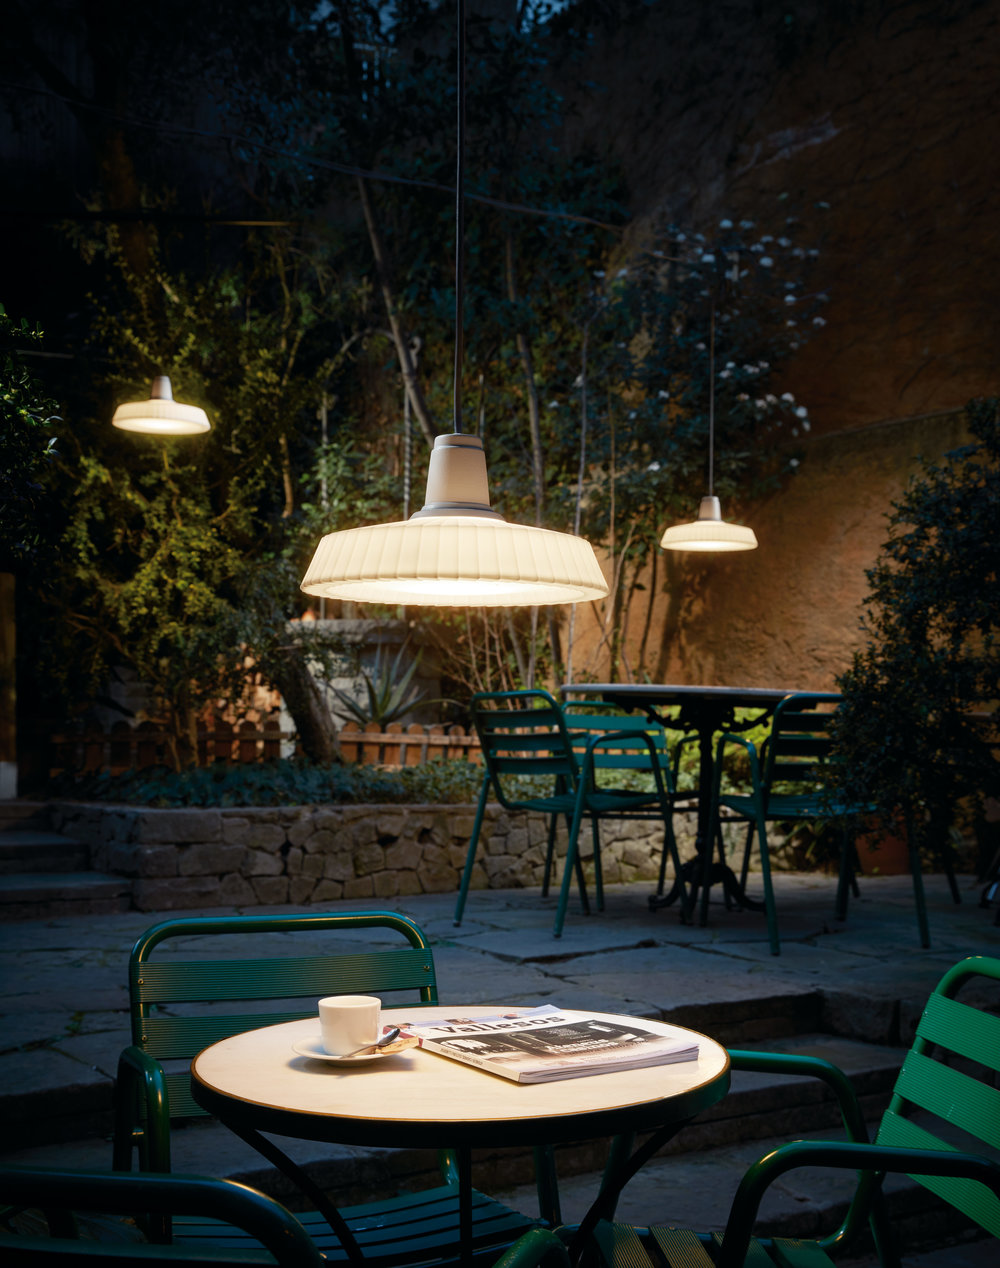 MARIETTA_OUTDOOR_Suspension_Ambiente#1.jpg